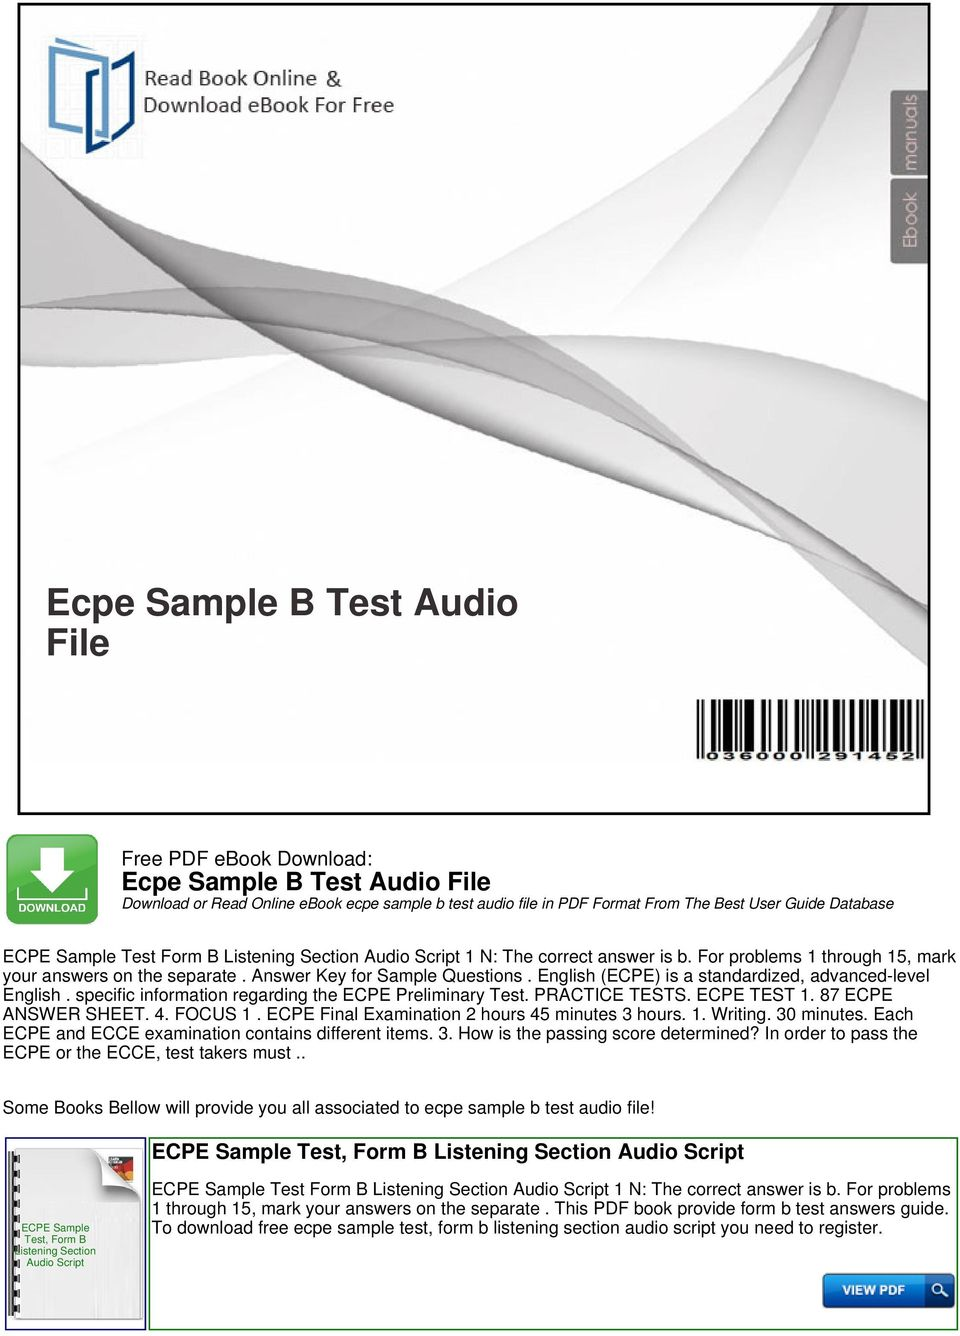 Ecpe sample b test audio file pdf english ecpe is a standardized advanced level english specific information regarding fandeluxe Choice Image